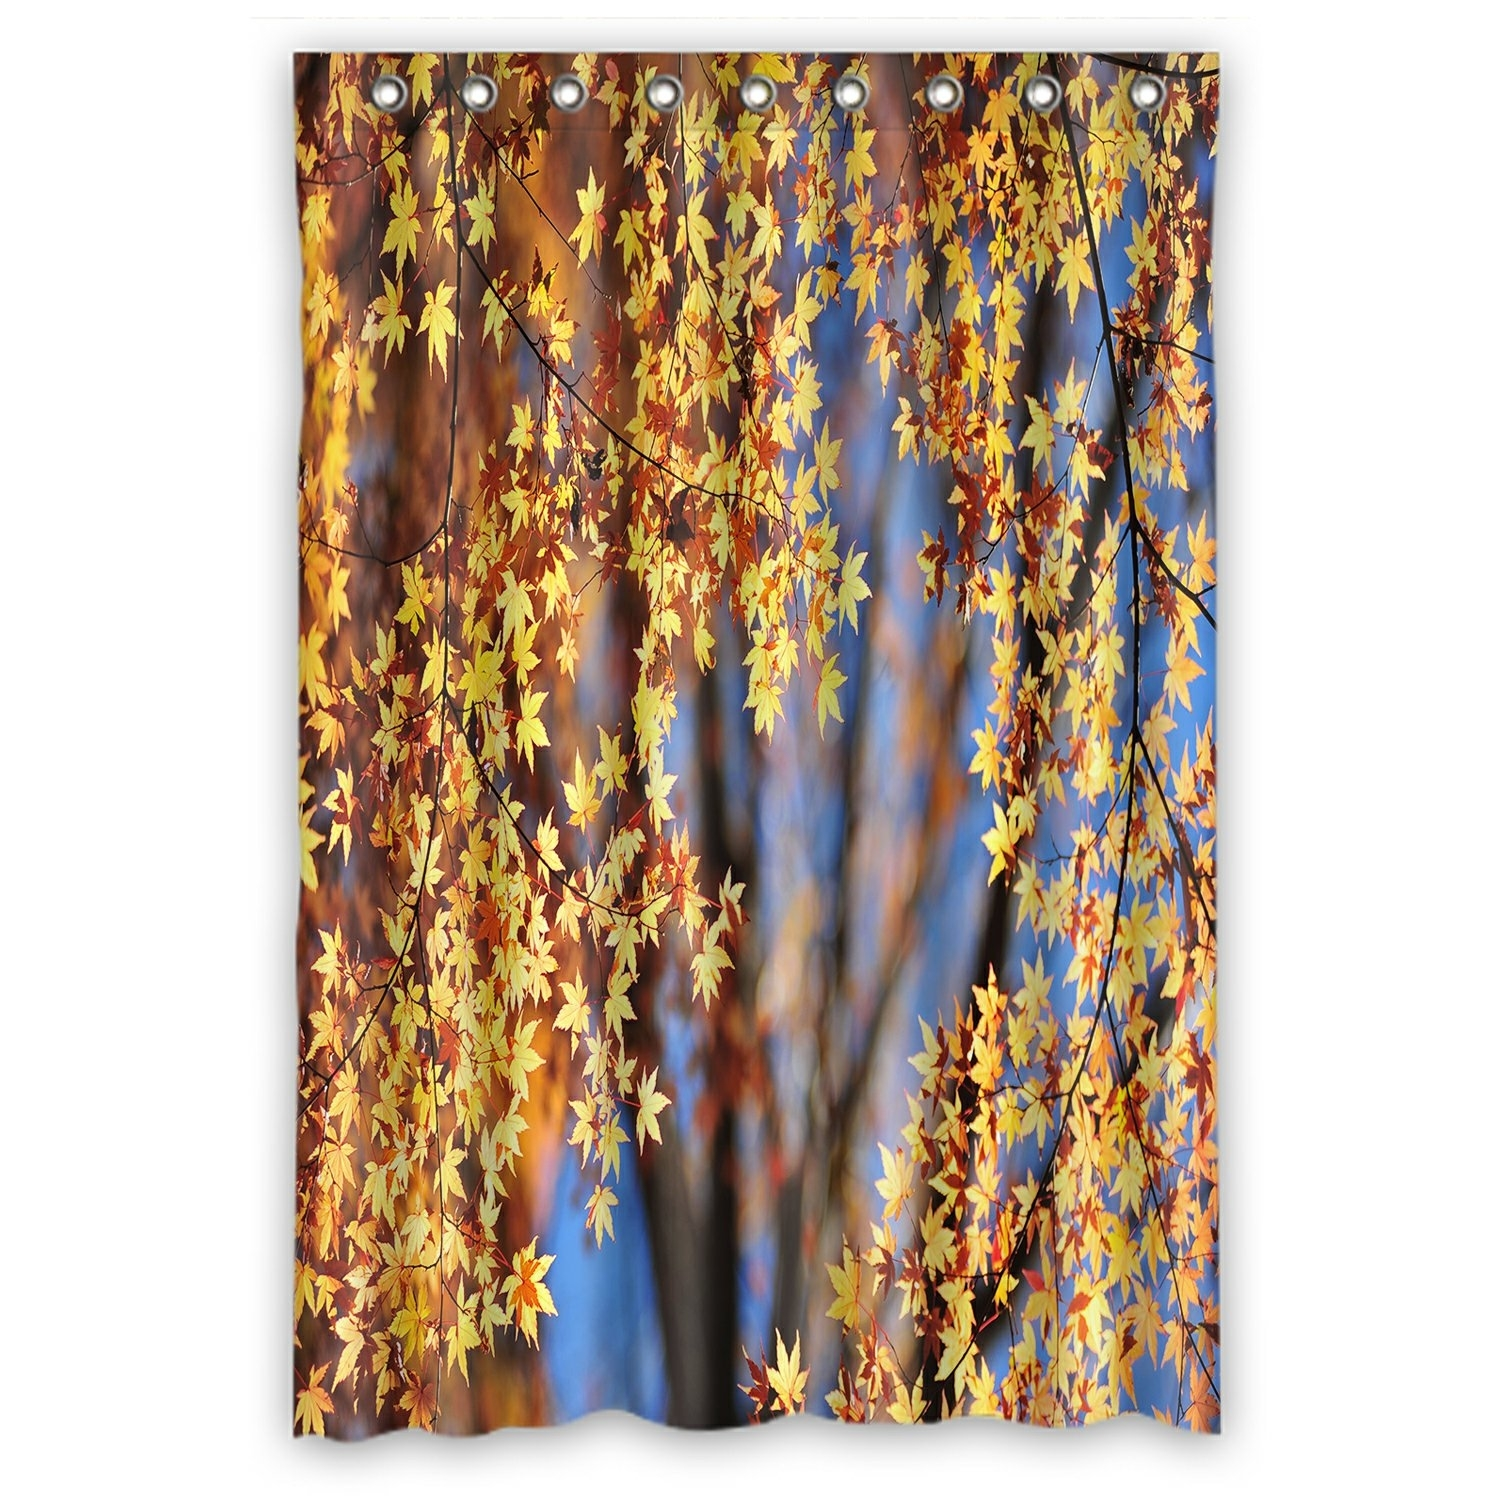 Landscape Shower Curtain, Autumn Maple Leaves Shower Curtain 48x72 inch